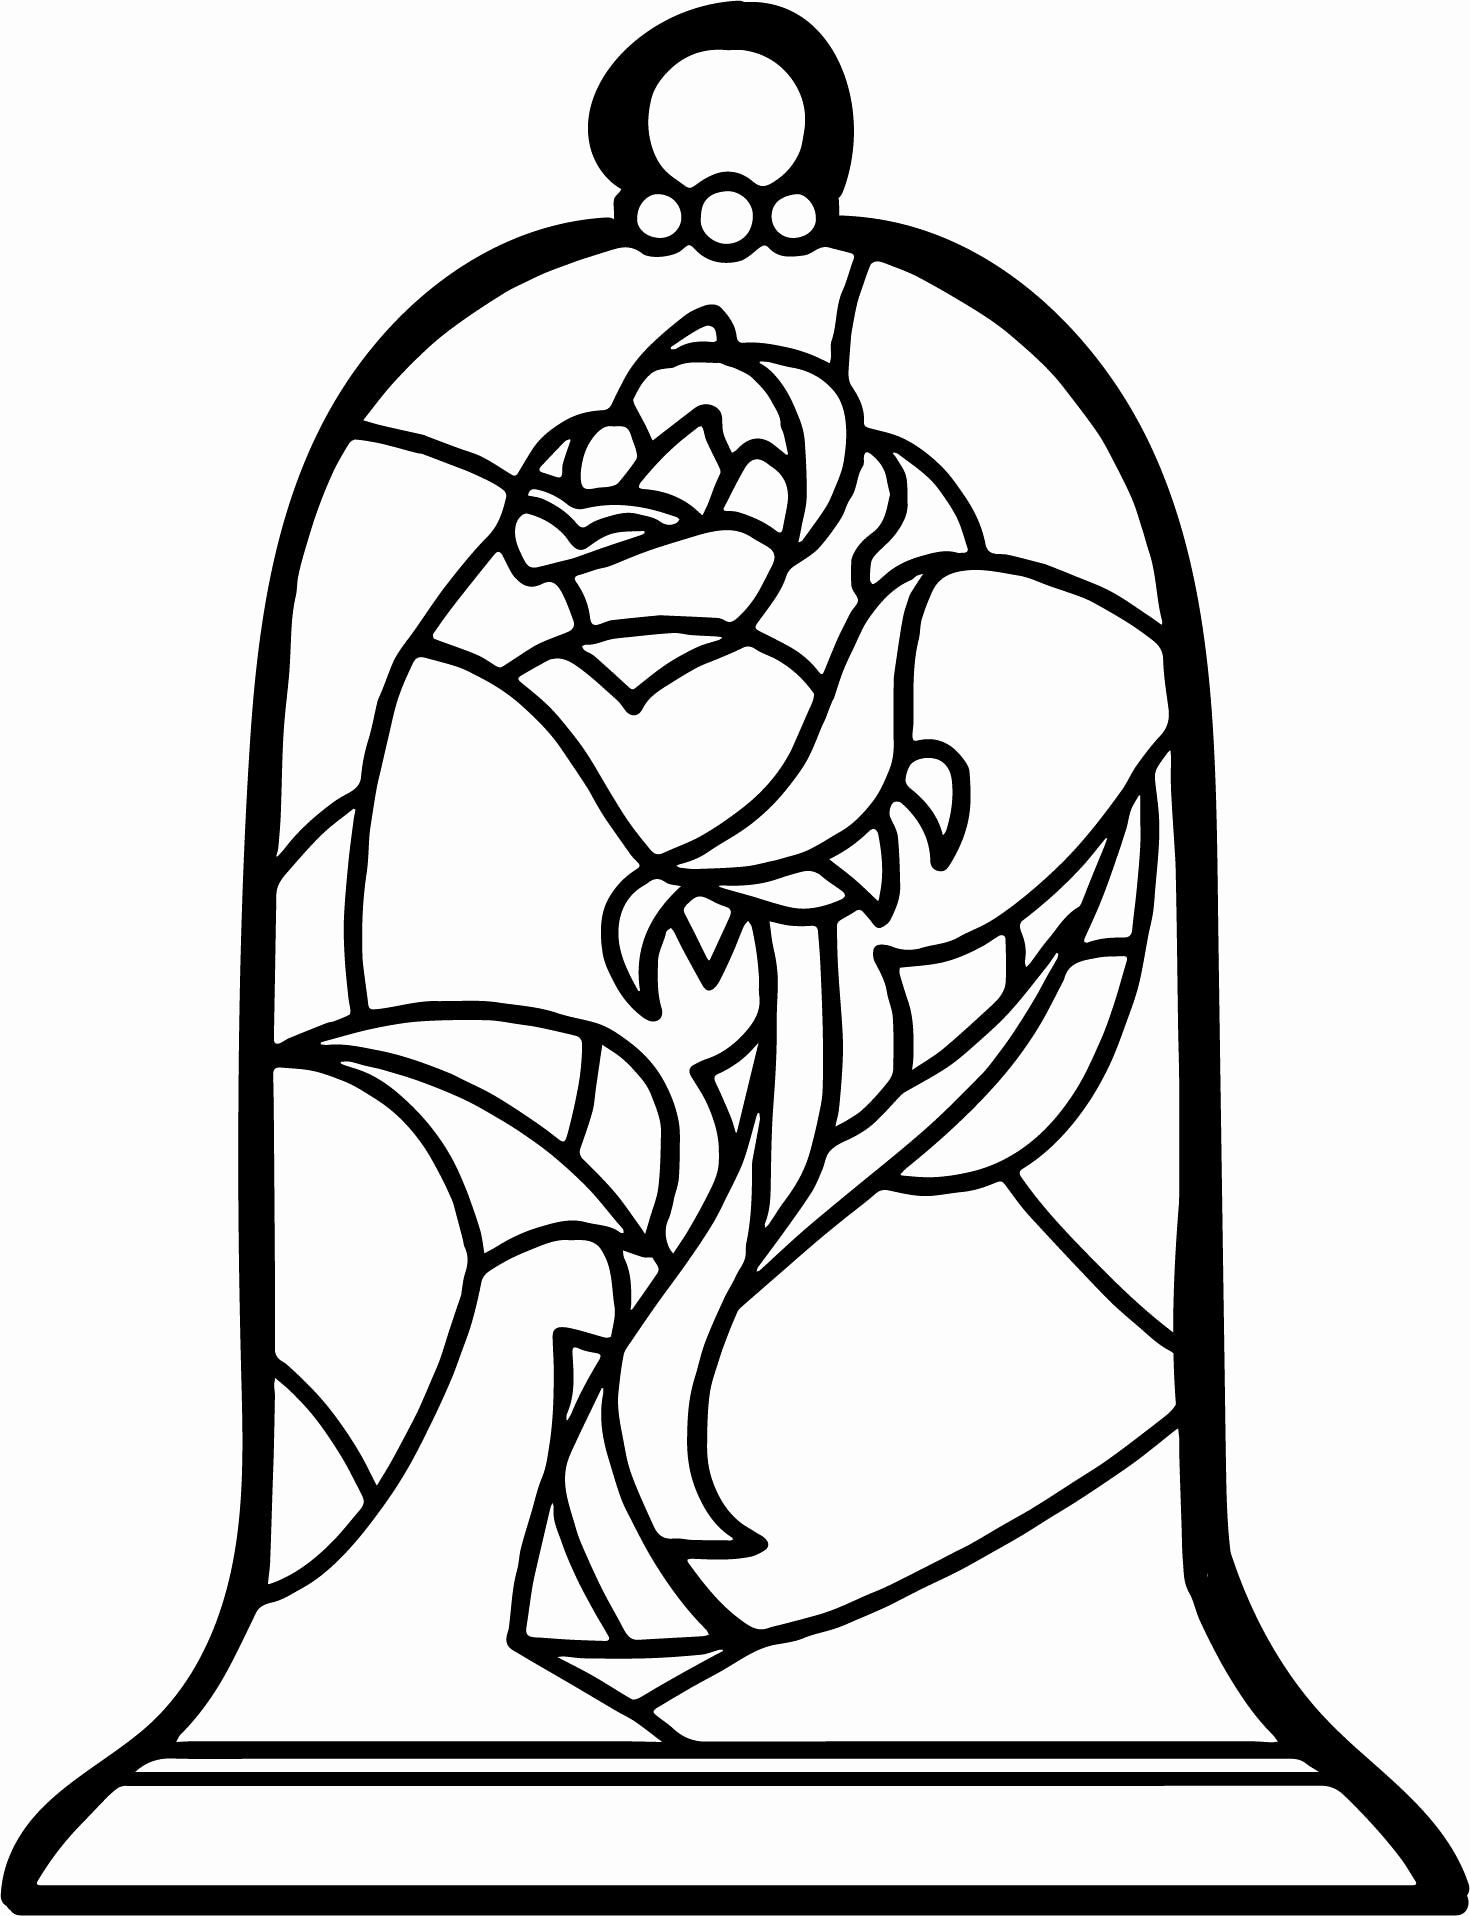 28 Beauty And The Beast Stained Glass Coloring Page In 2020 Rose